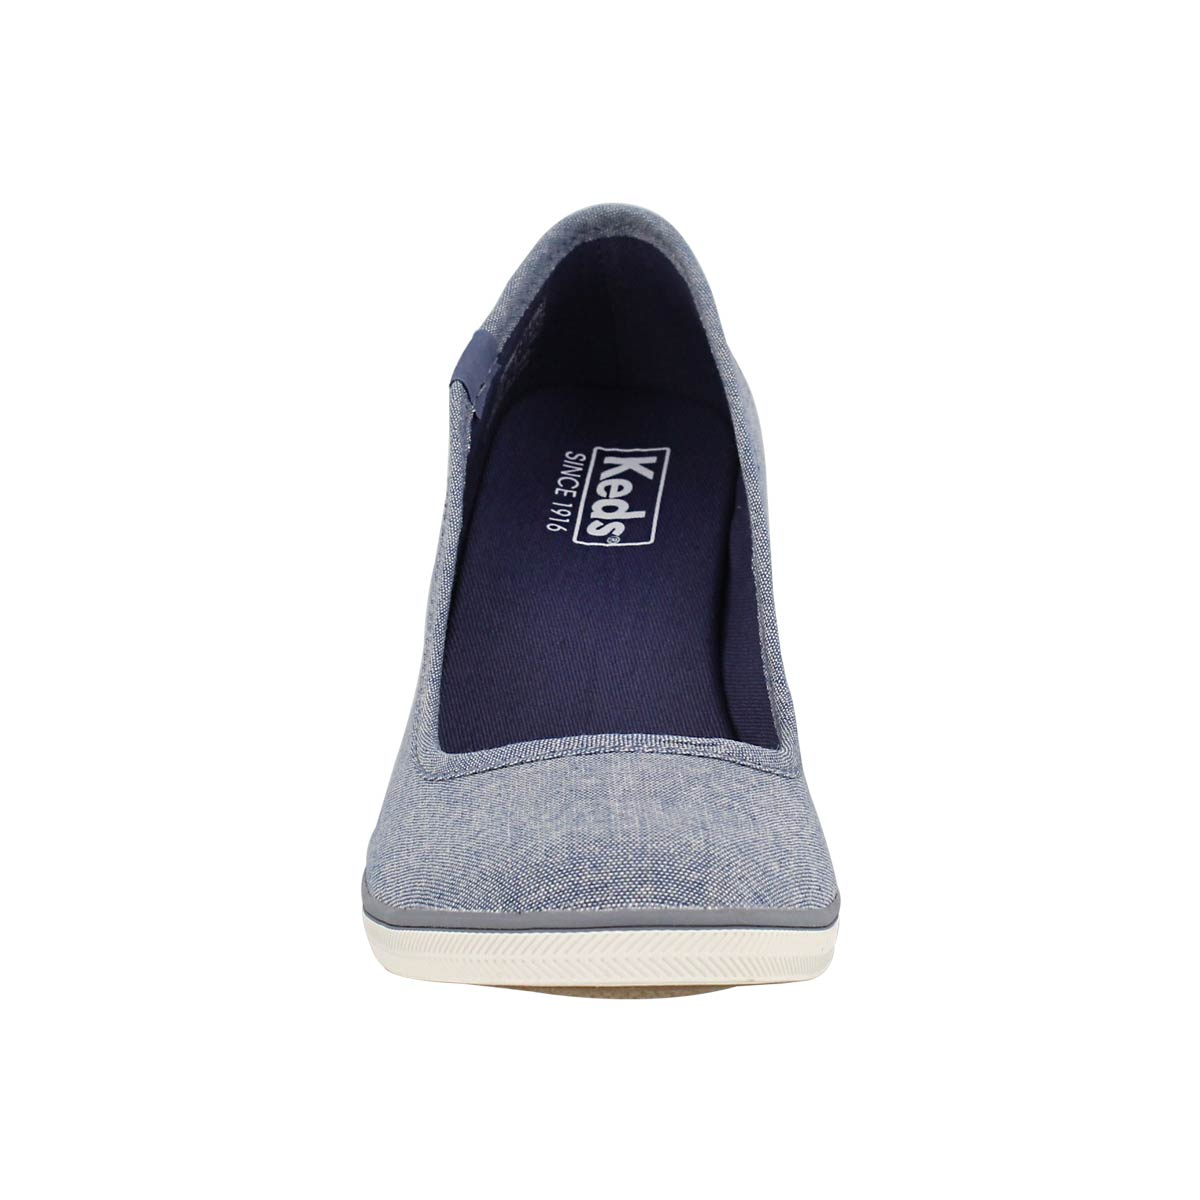 Lds Damsel blue chambray wedge